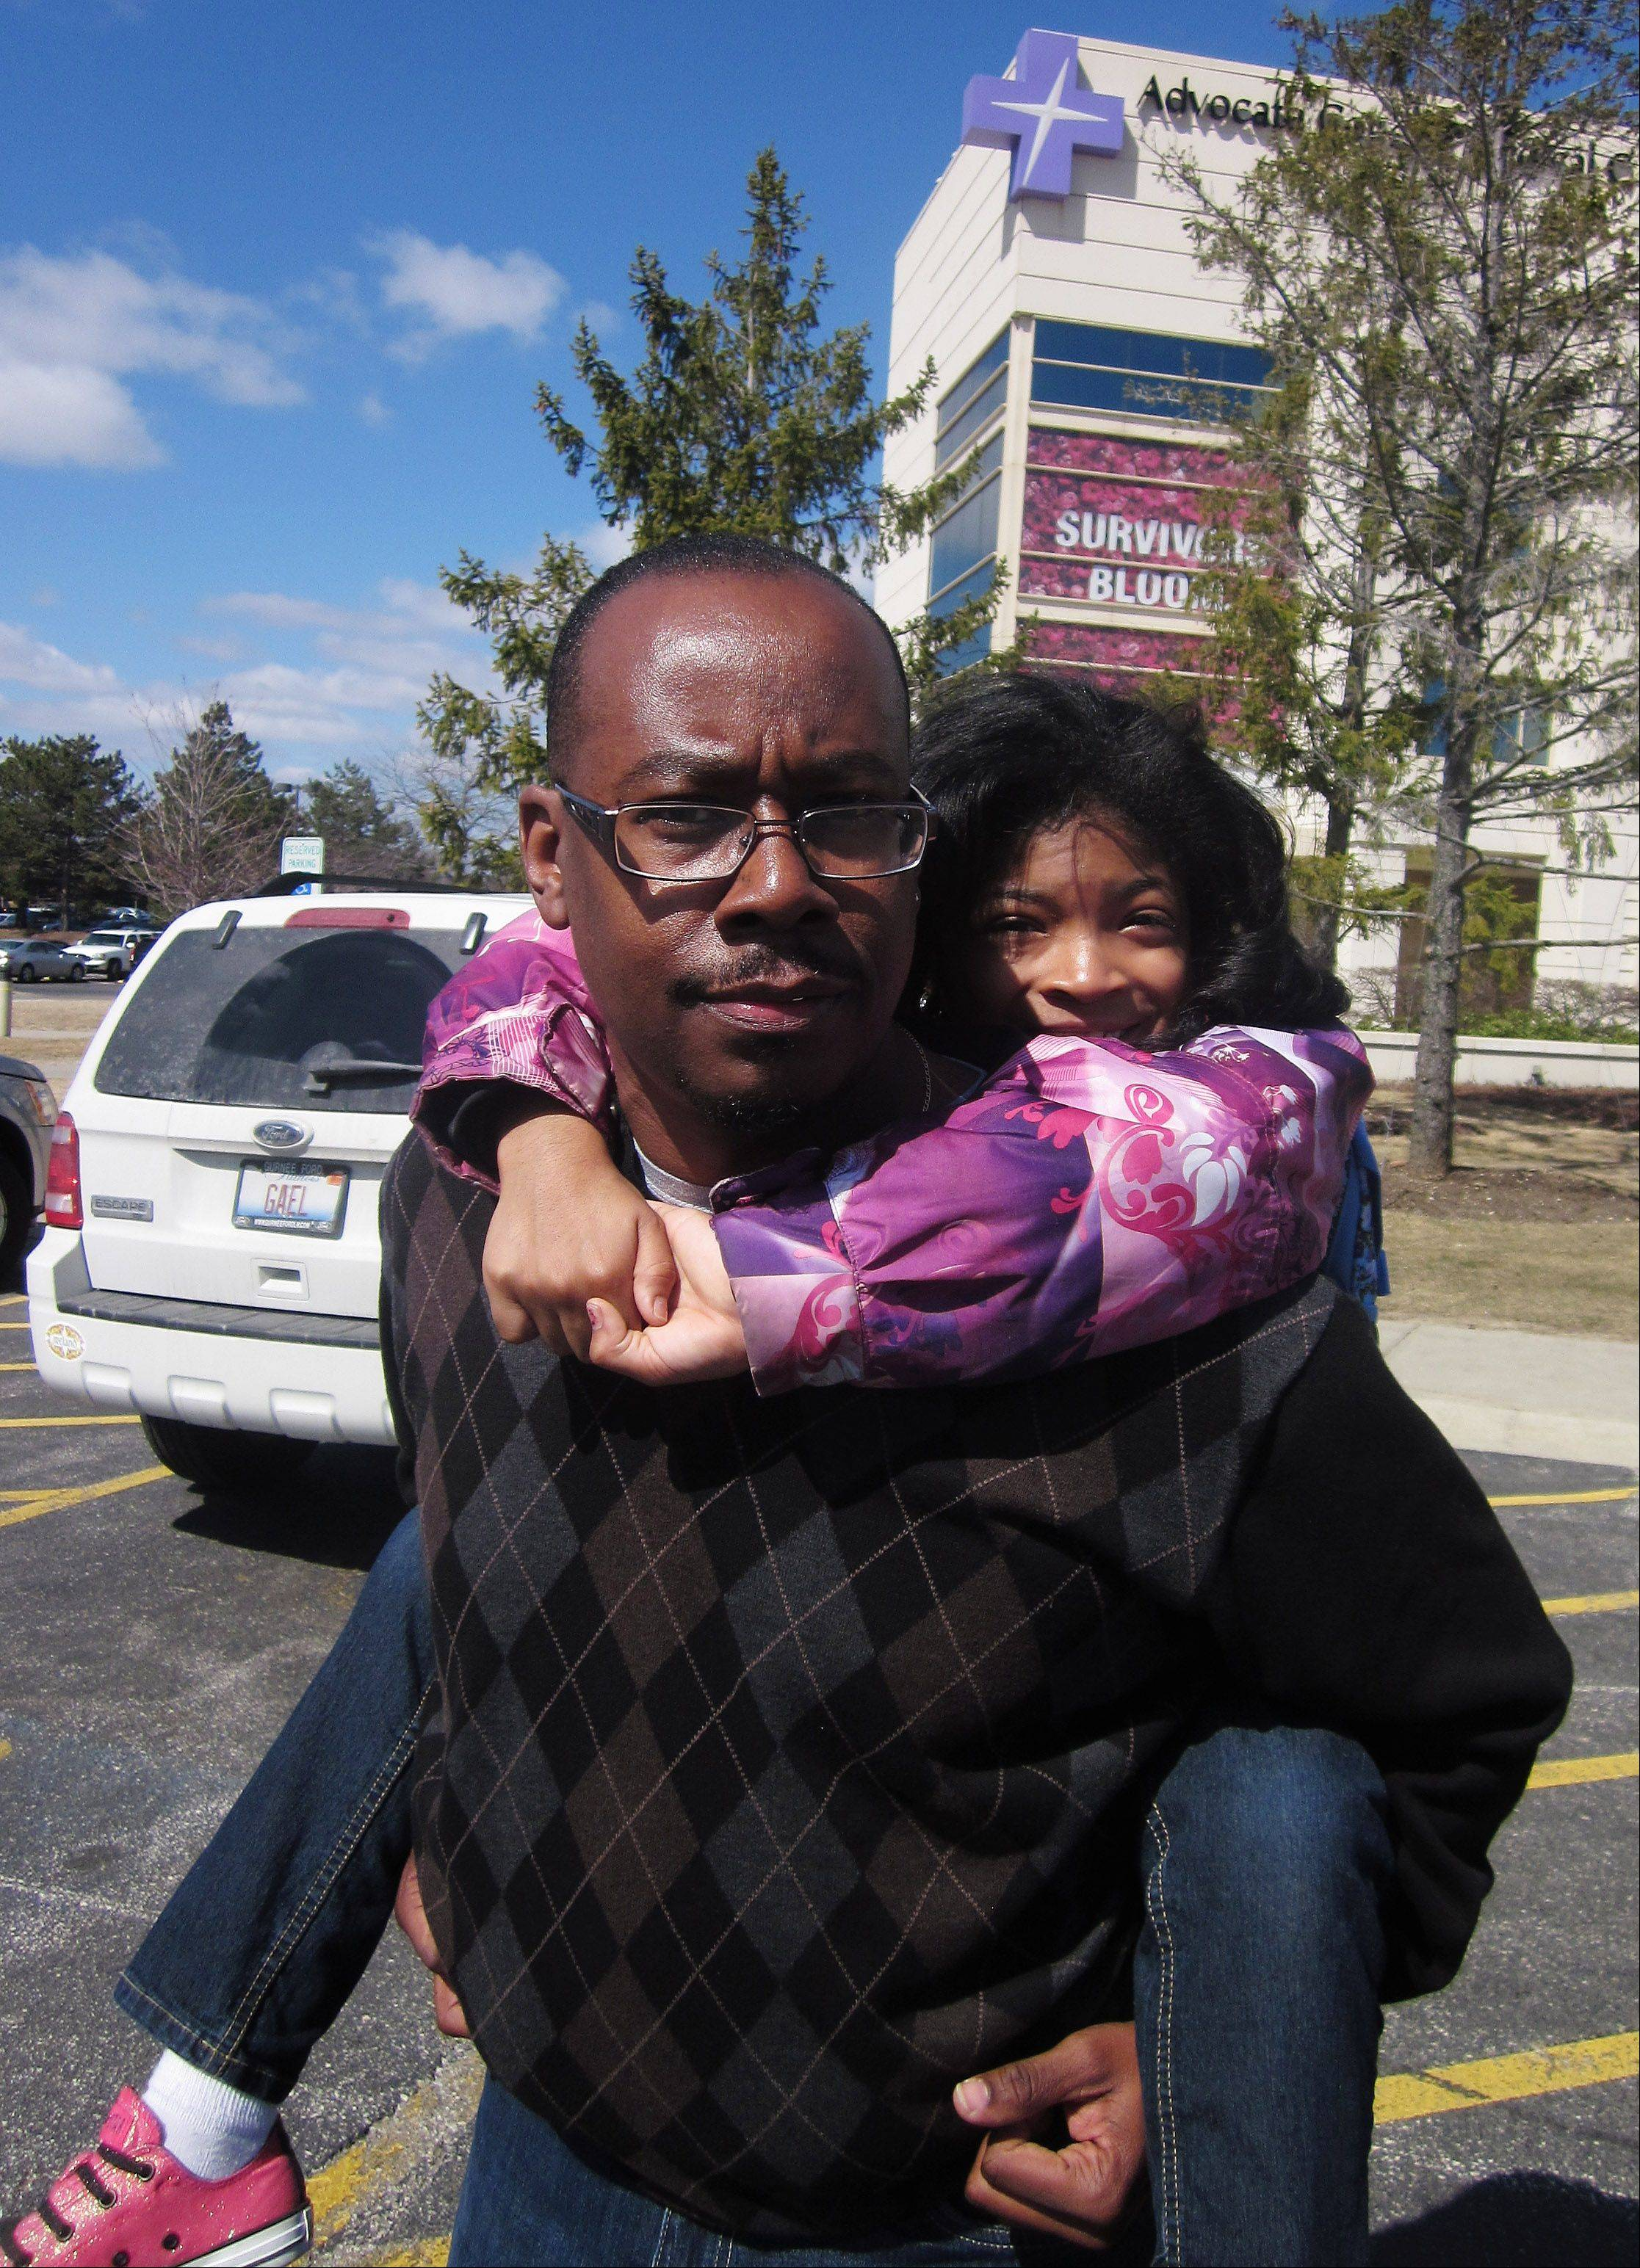 Cliff Smith of Zion carries his daughter Mariah, 8, after they were reunited at Advocate Condell Medical Center in Libertyville. She was a passenger on the school bus involved in a crash near Wadsworth.